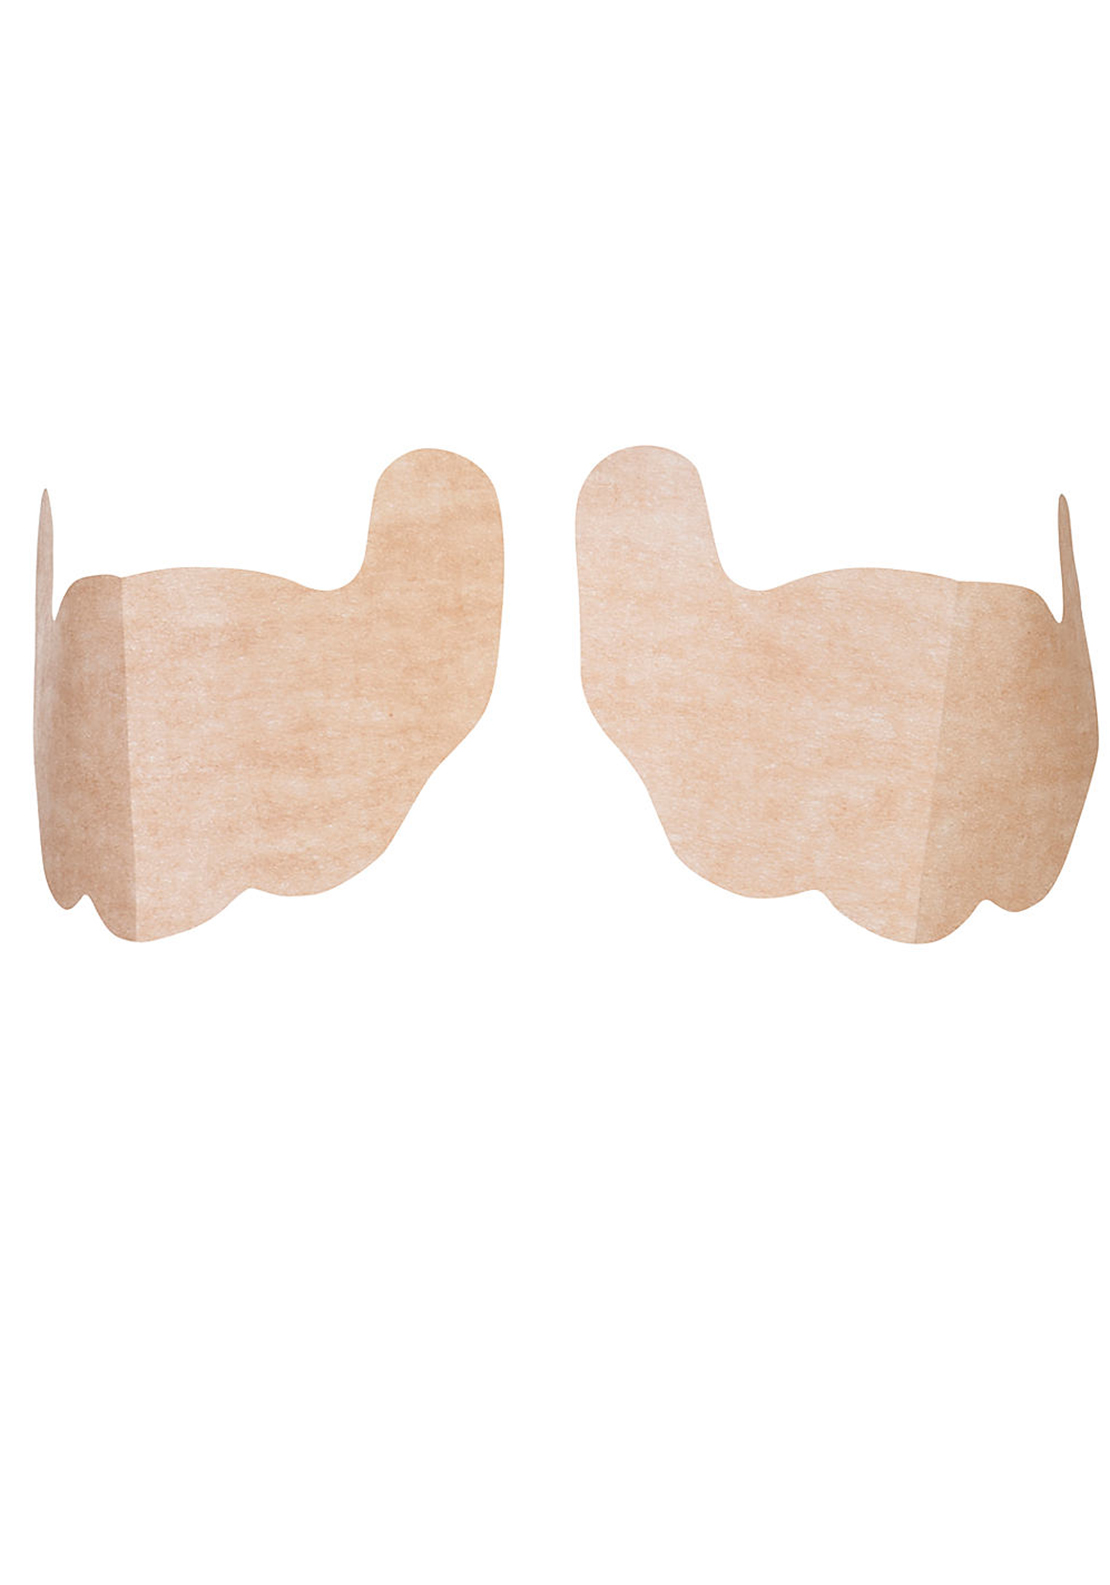 Fashion Forms Adhesive Body Bra, Nude